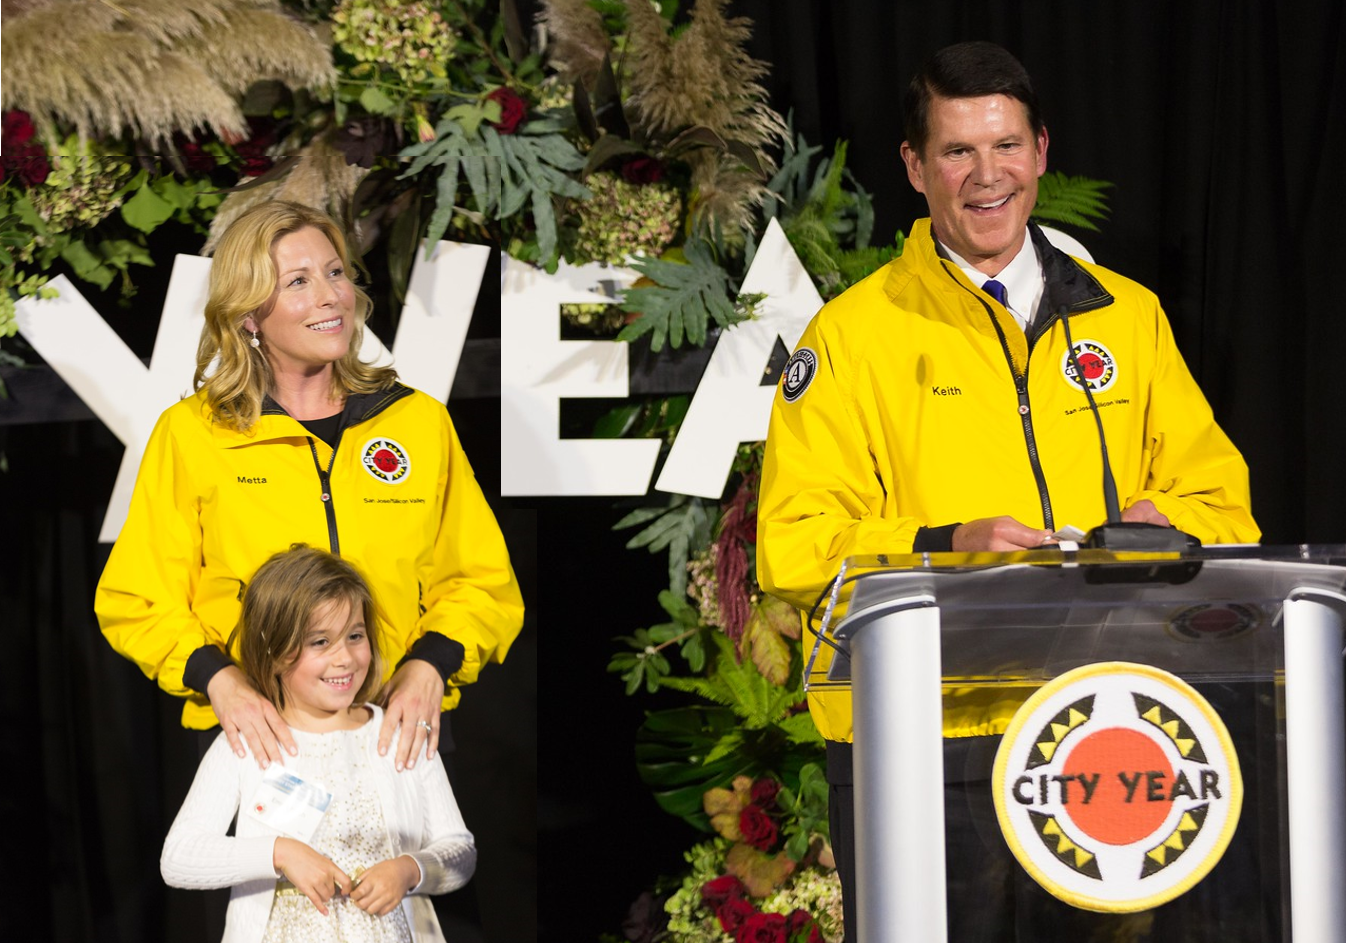 Photo Caption: Keith and wife Metta, along with Emma, being honored with City Year 2018 Citizen Leadership Award